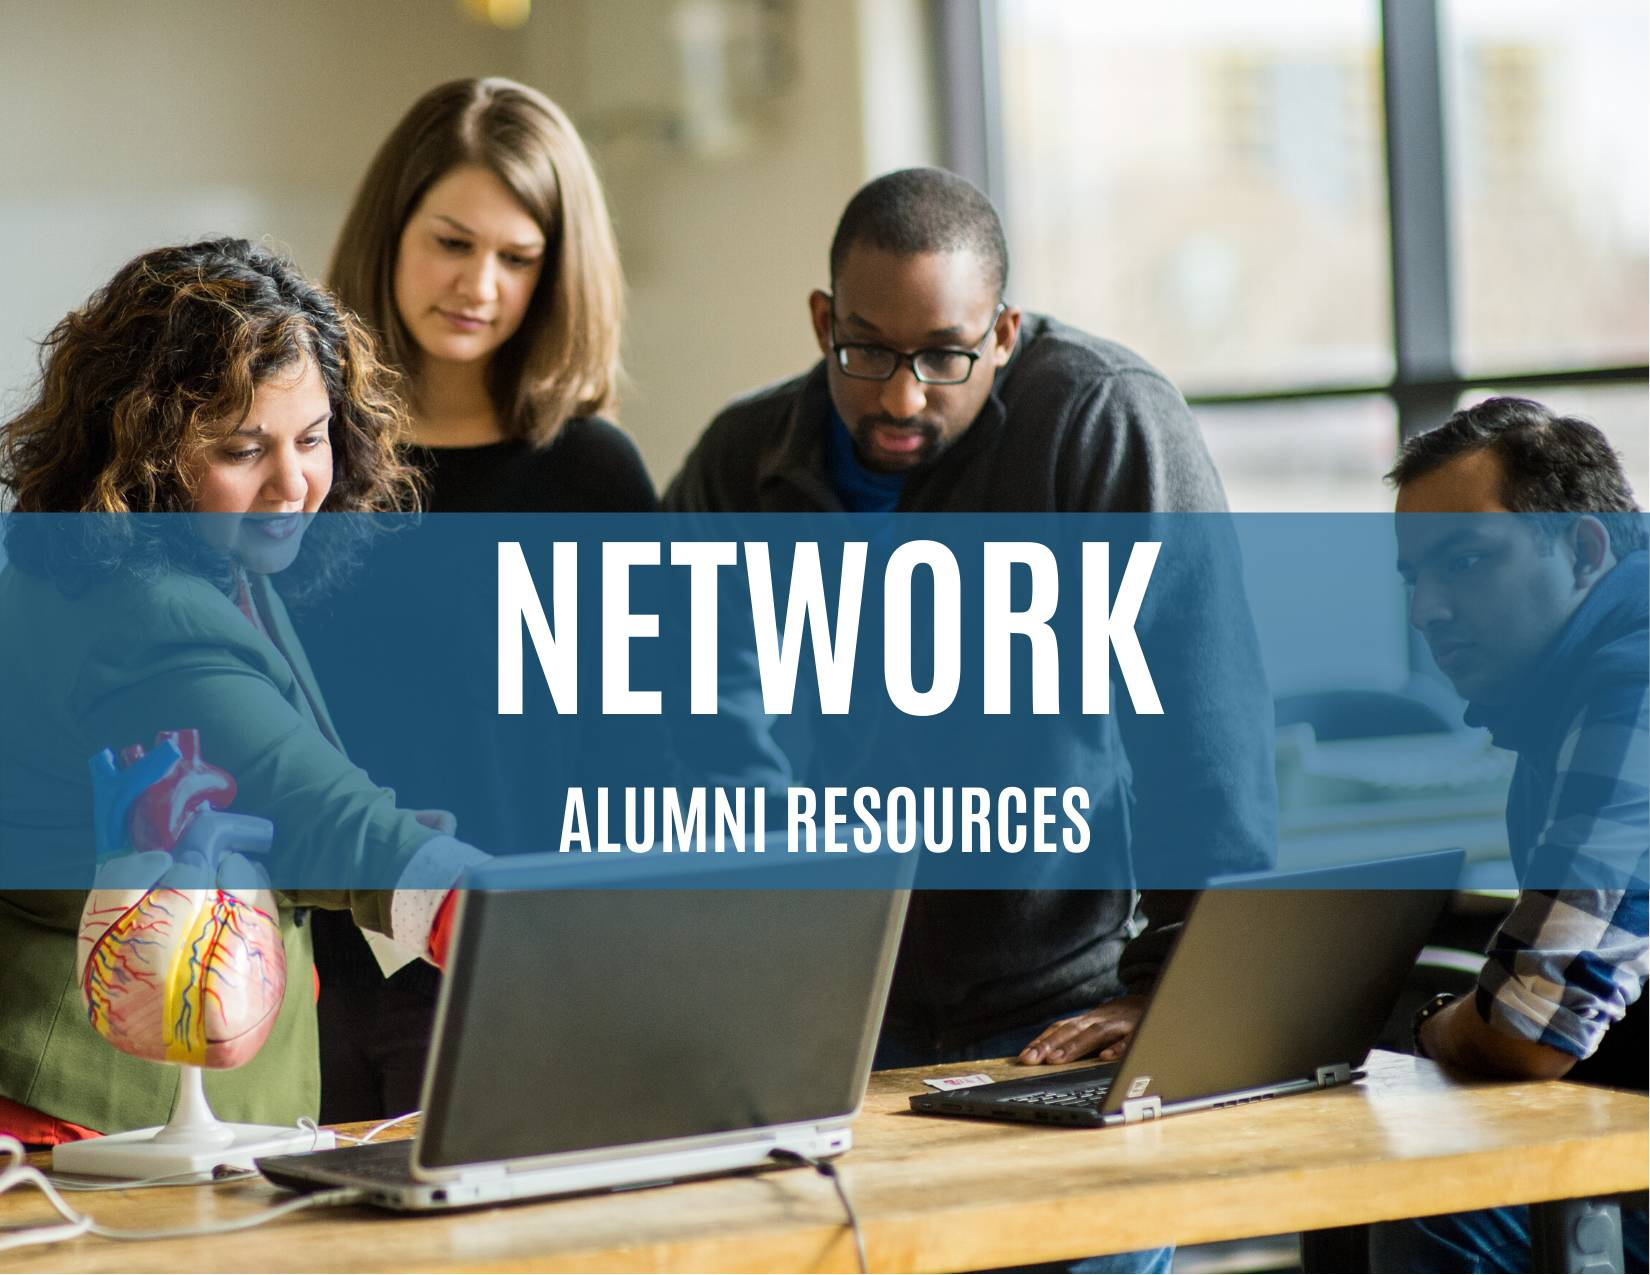 Network with alumni resources